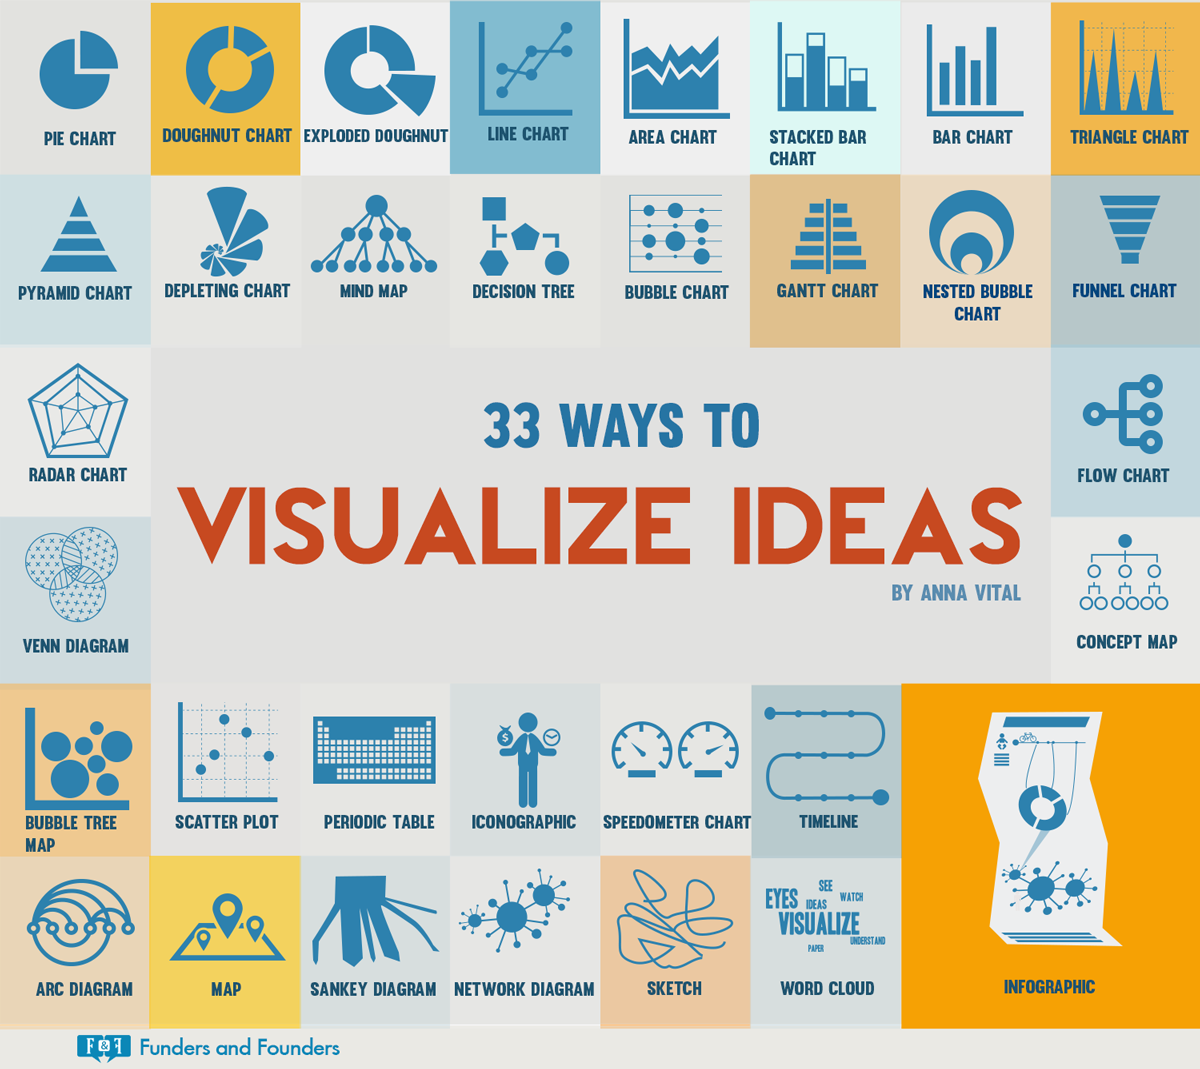 33 Creative Ways to Visualize Ideas [Infographic